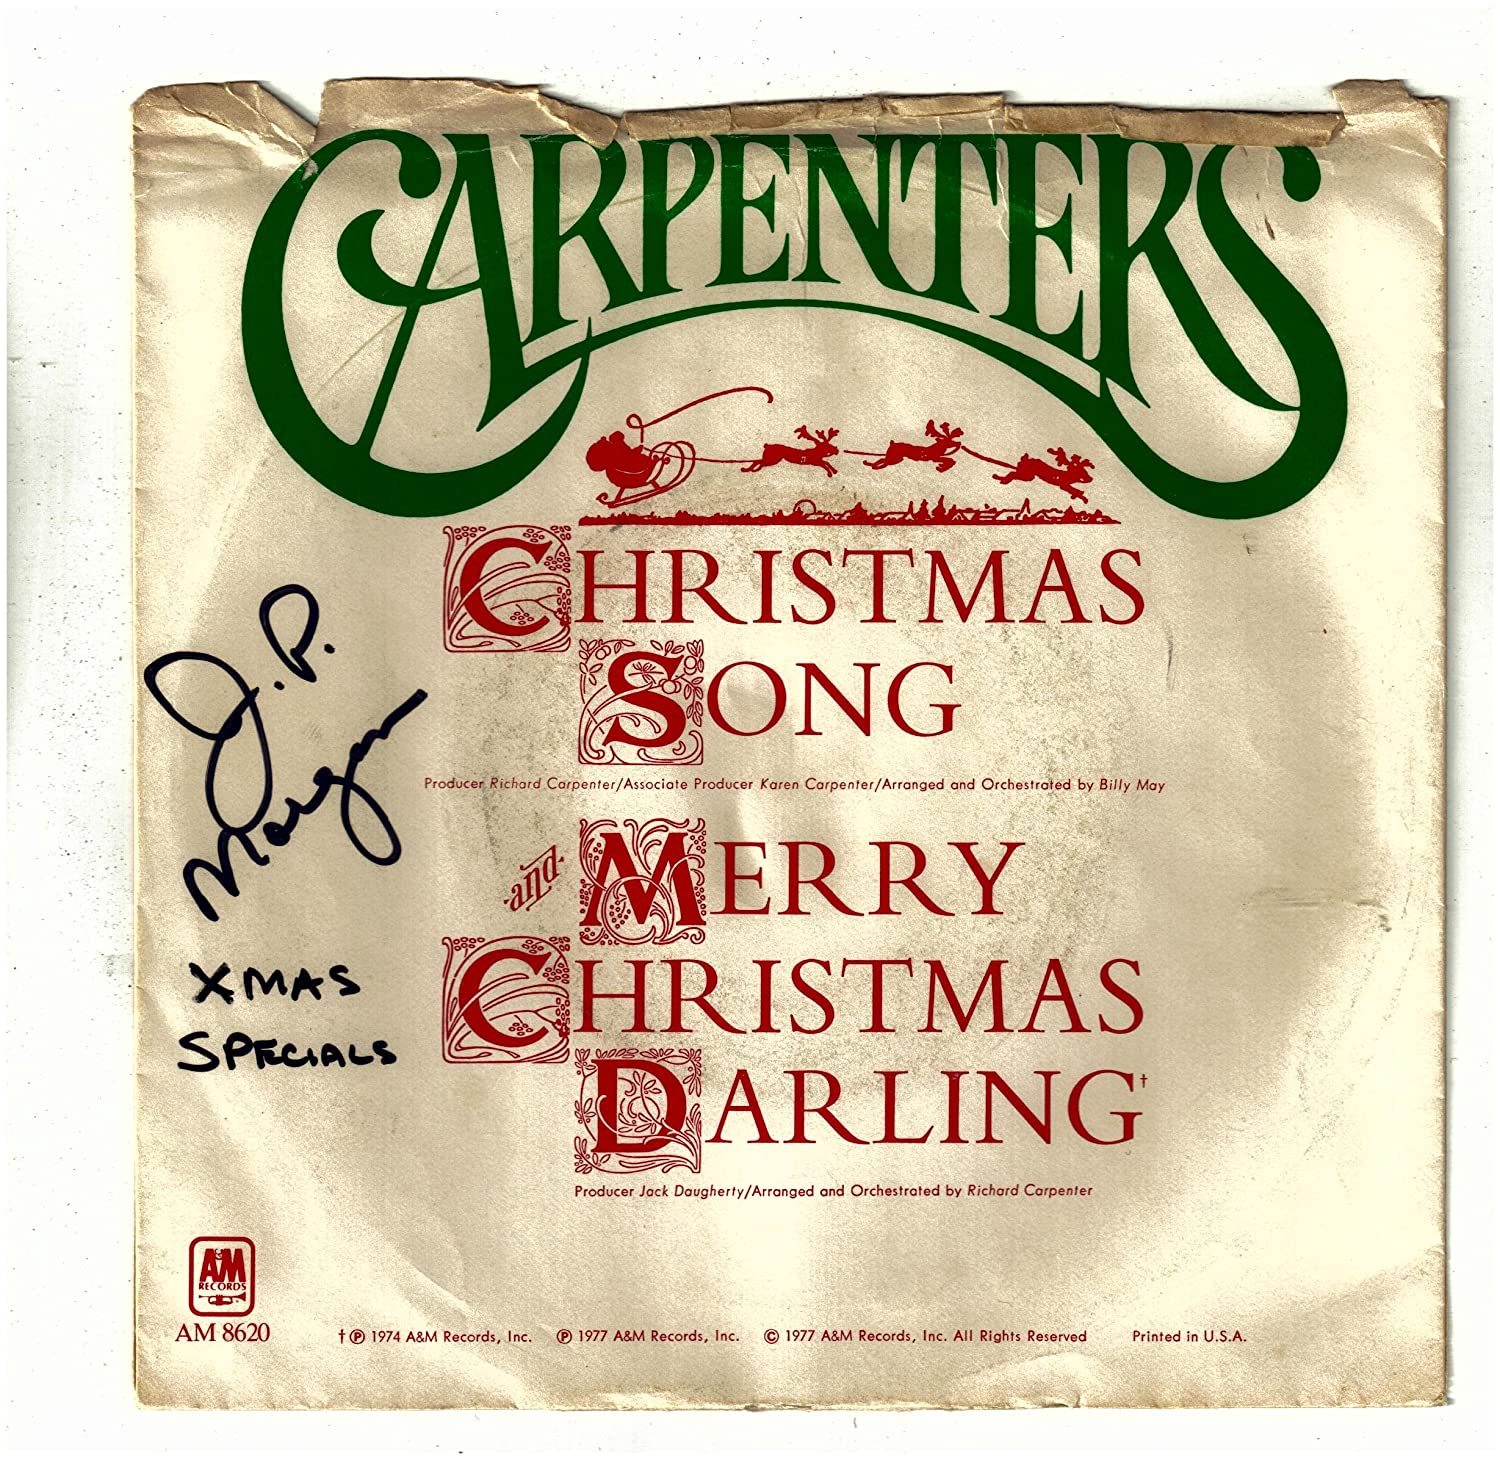 THE CARPENTERS - CARPENTERS, THE / Christmas Song bw Merry Christmas ...